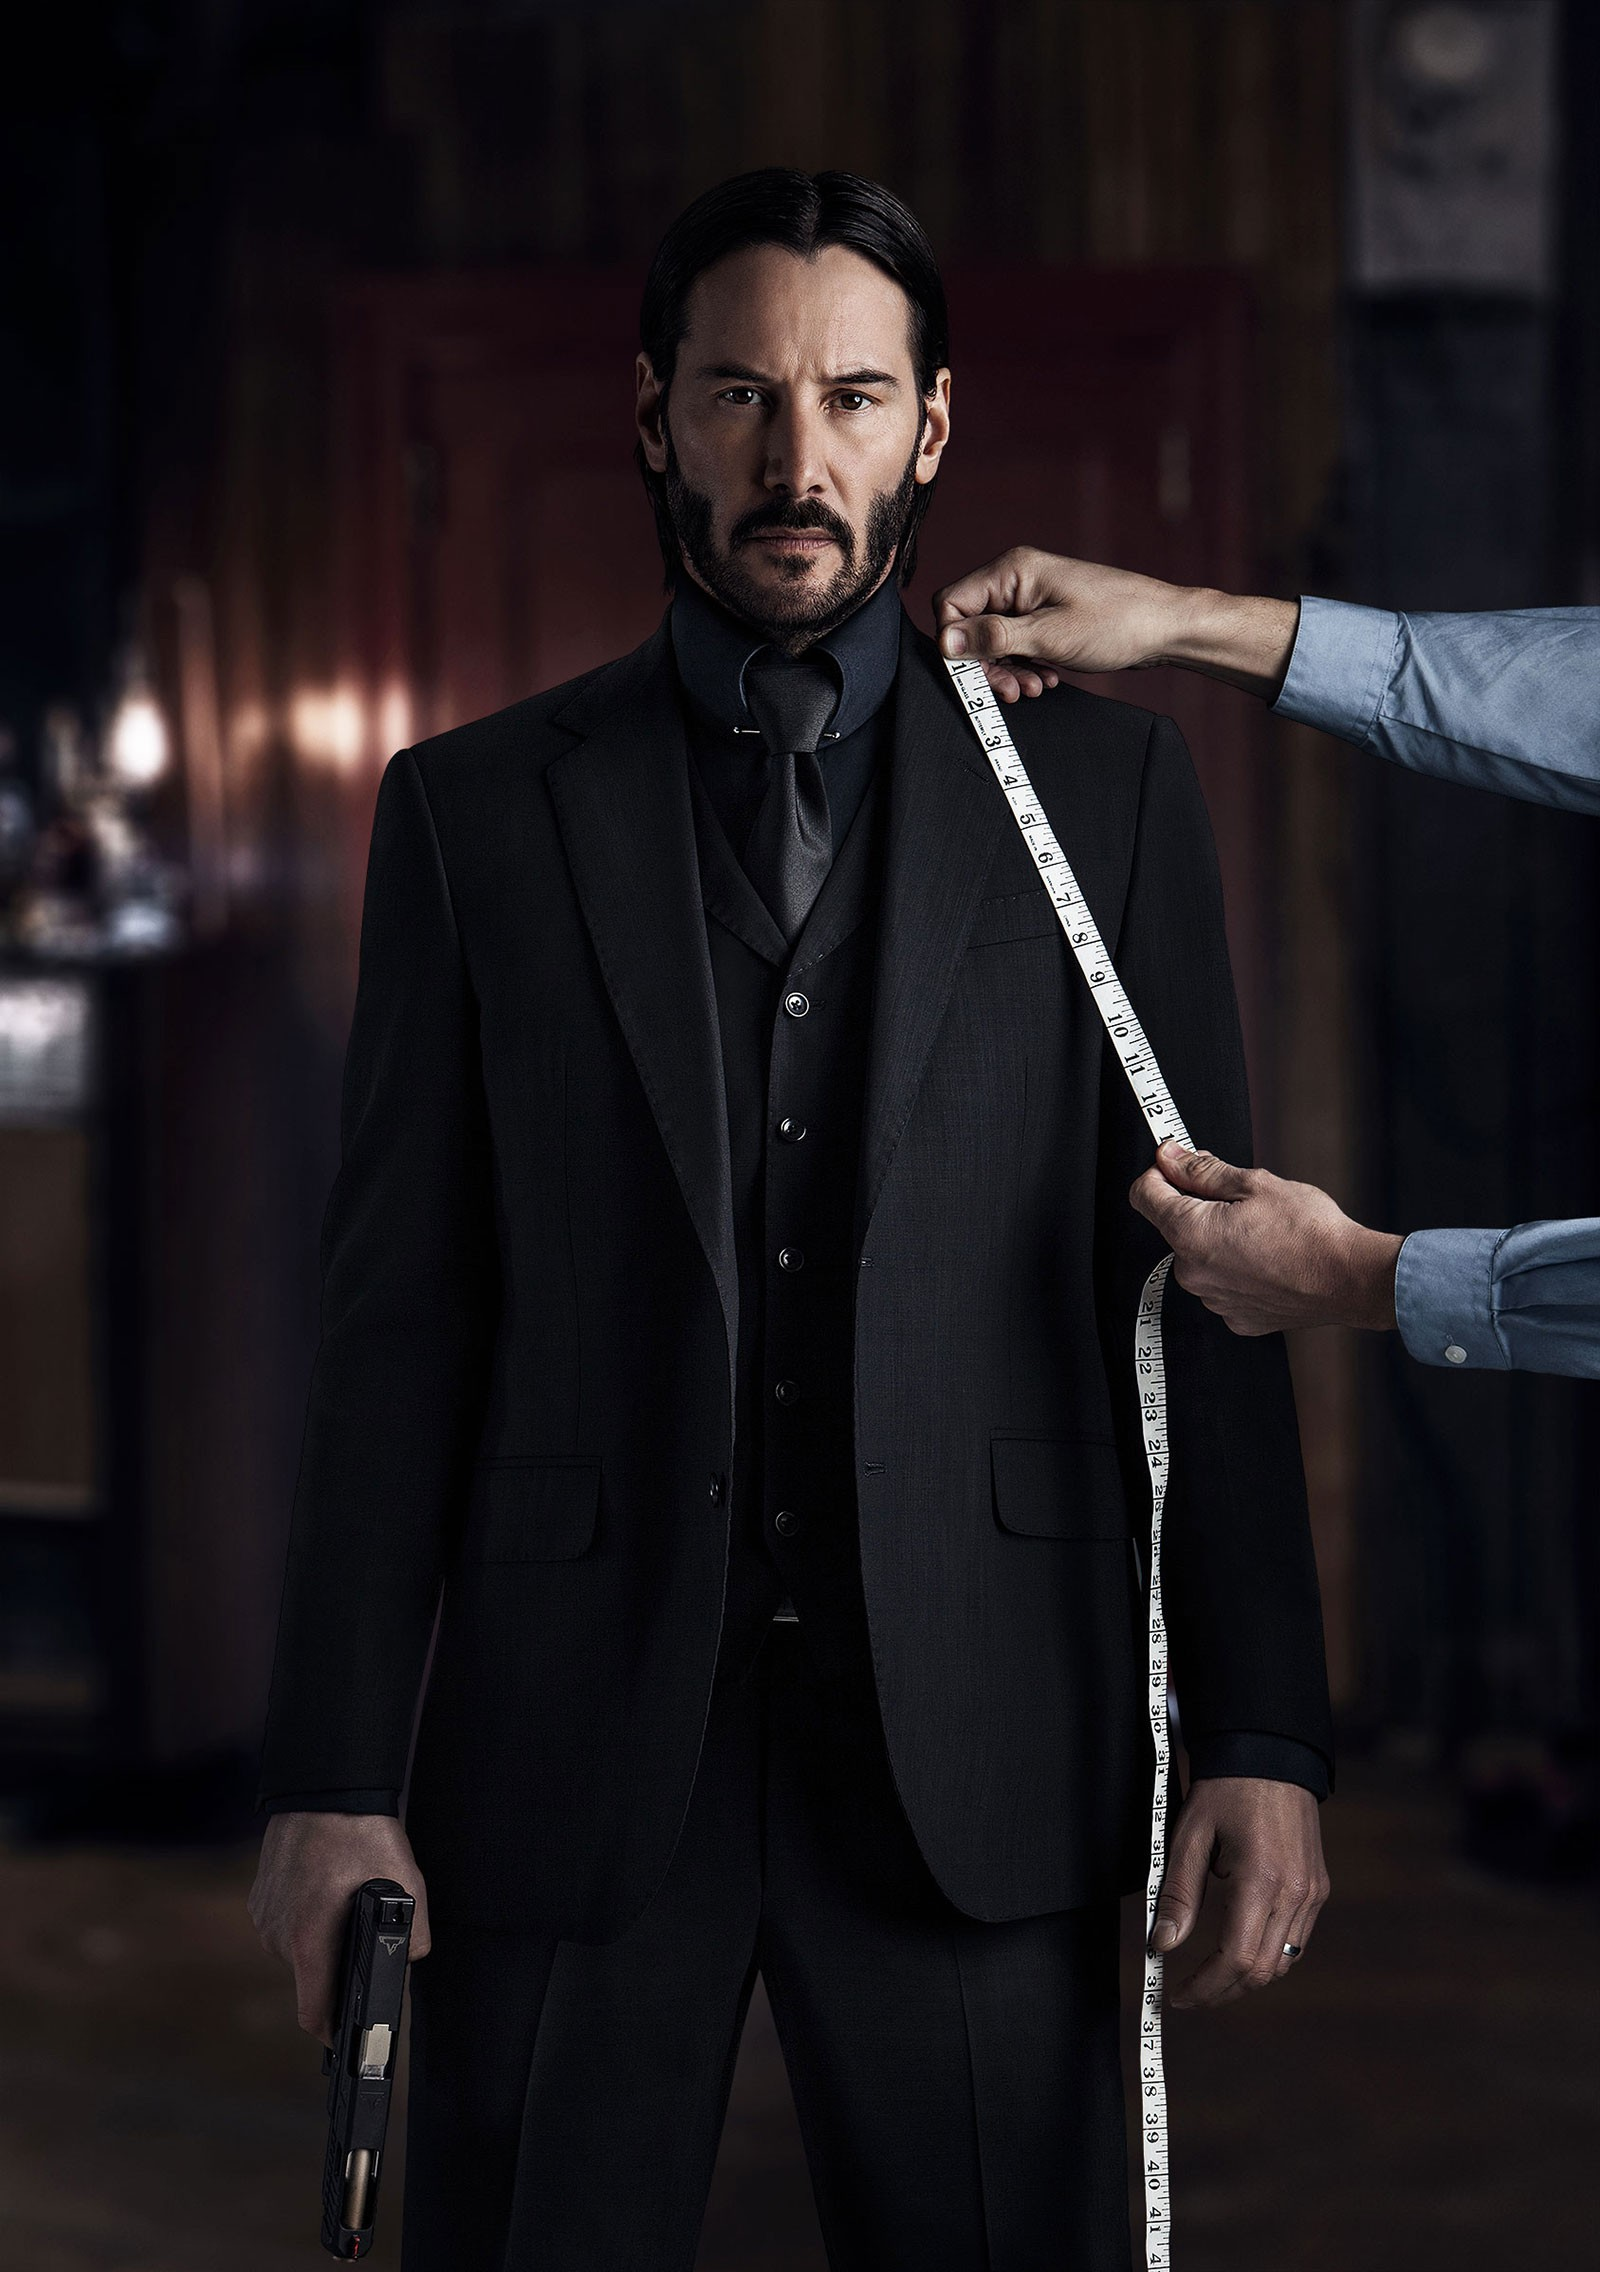 John Wick John Wick Wiki Fandom Powered By Wikia